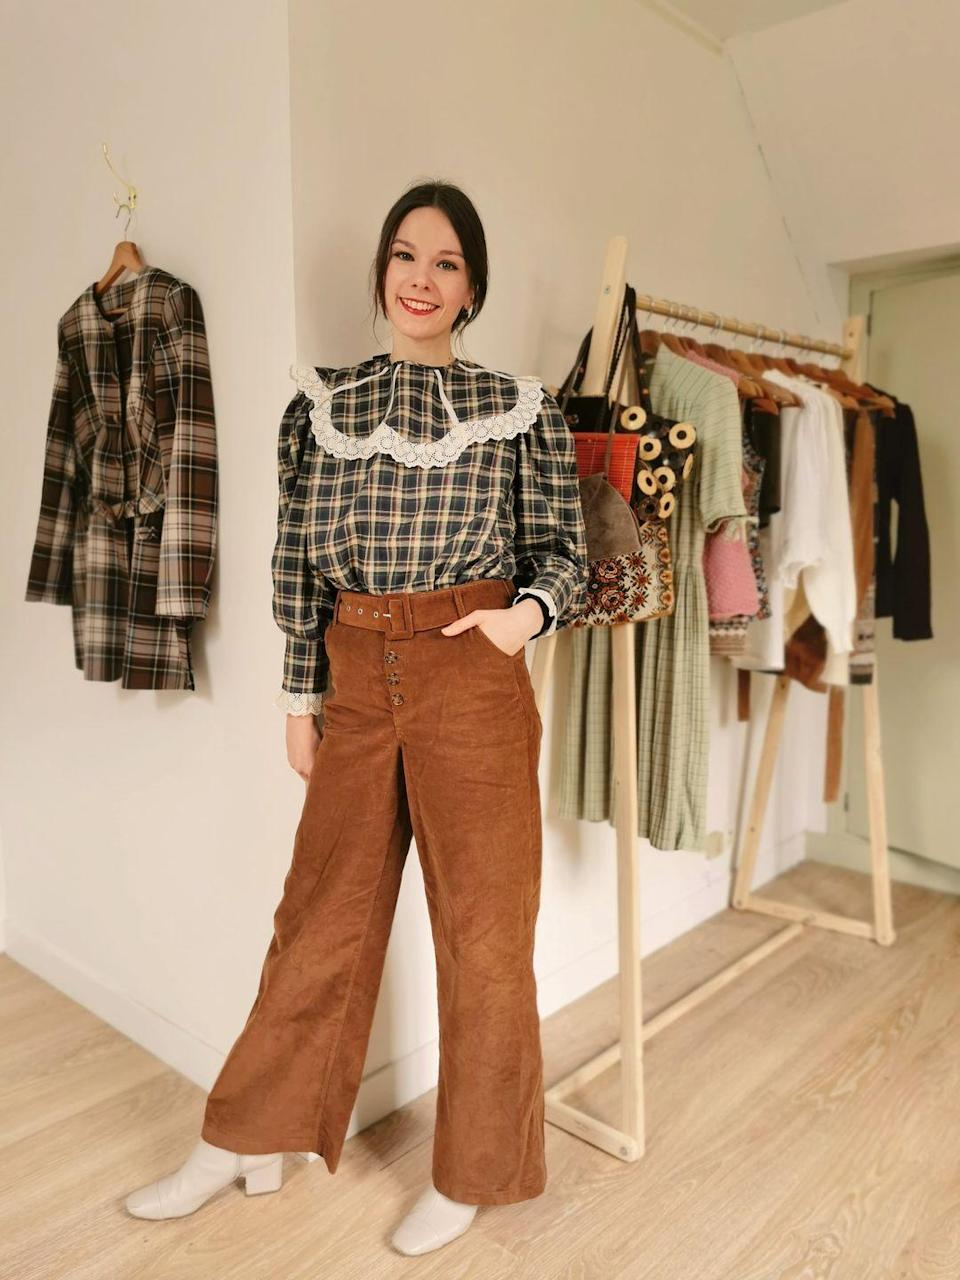 """<p>'I handpick every item I sell on Ellem Vintage and release a small curated collection almost every Sunday,' 27-year-old Lucile Merveille said of her store Ellem Vintage.</p><p>'The themes of the collections depends on my mood, the weather, a trend or colour I've been liking or can even be based on a piece of art that that I have found inspiring. I love choosing any item of clothing that speaks to me in the hope that it will meet its perfect, unique match.'</p><p><a class=""""link rapid-noclick-resp"""" href=""""https://www.instagram.com/ellemvintage/"""" rel=""""nofollow noopener"""" target=""""_blank"""" data-ylk=""""slk:SHOP ELLEM VINTAGE NOW"""">SHOP ELLEM VINTAGE NOW</a></p>"""